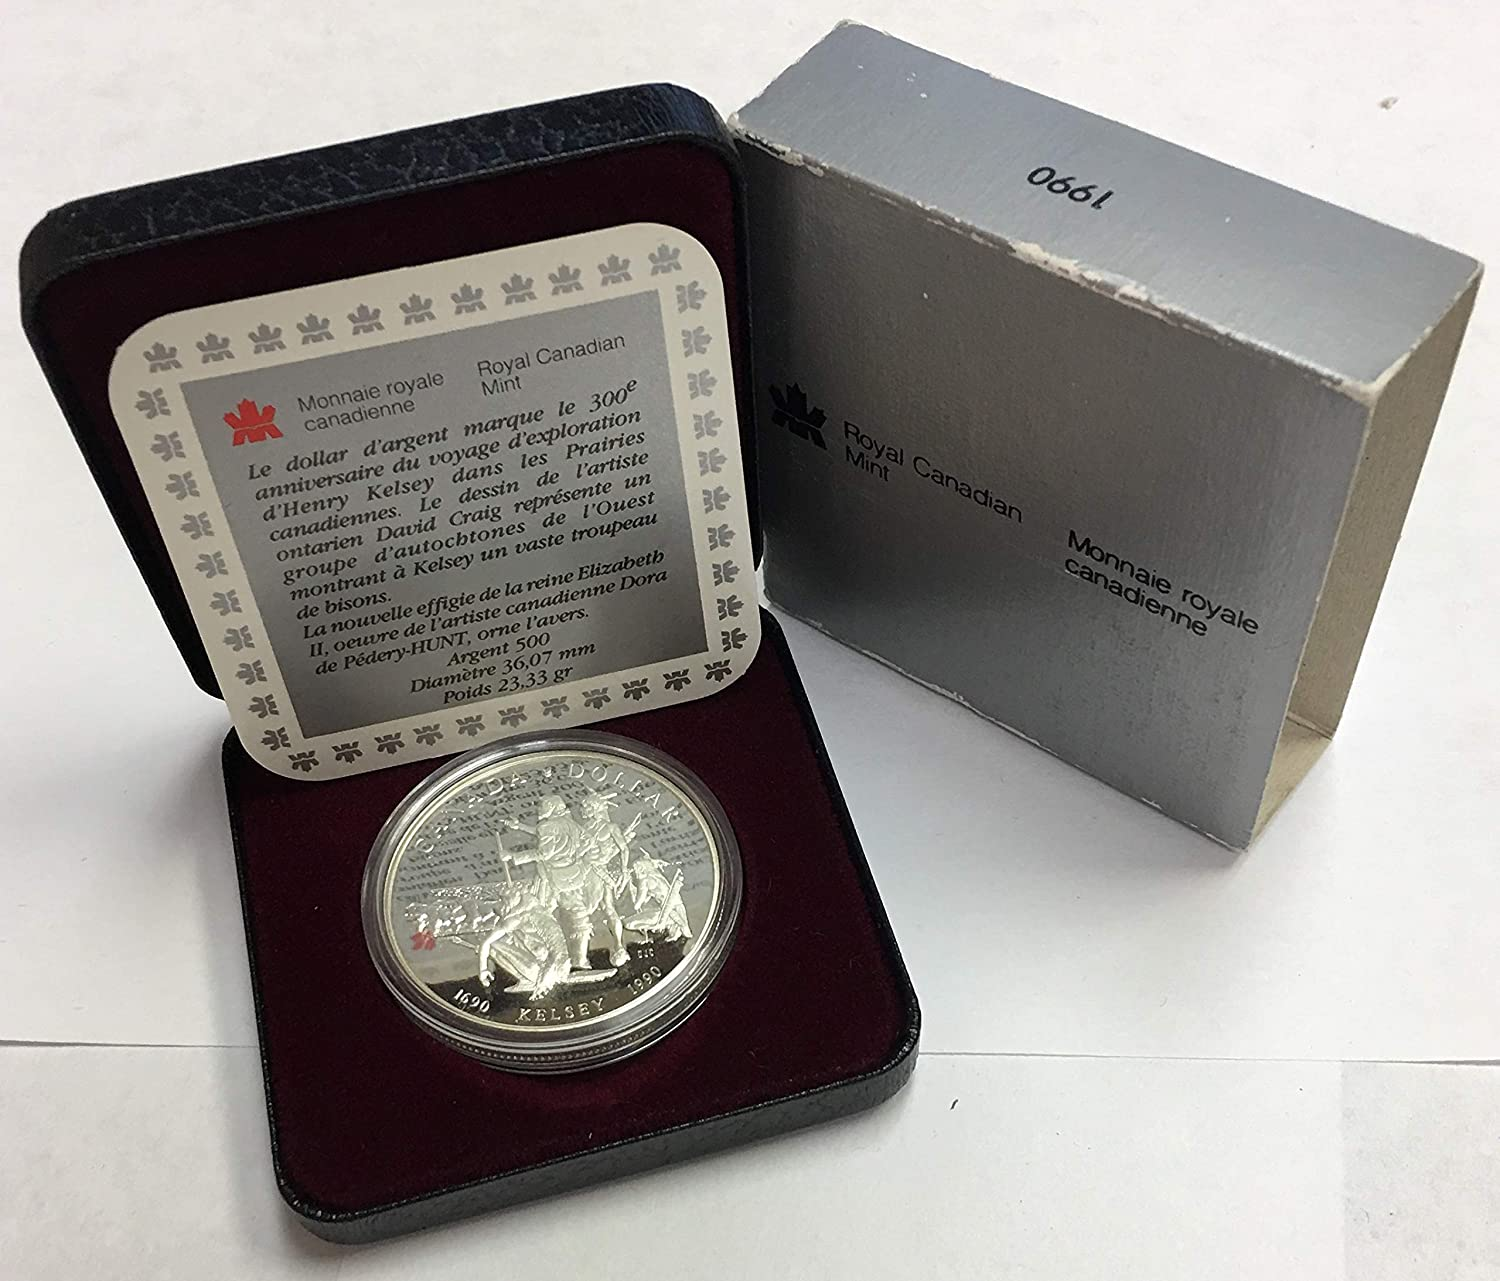 CA 1990 Canada Silver Dollar-300th Anniversary of Henry Kelsey Exploration in Original Box and COA Proof